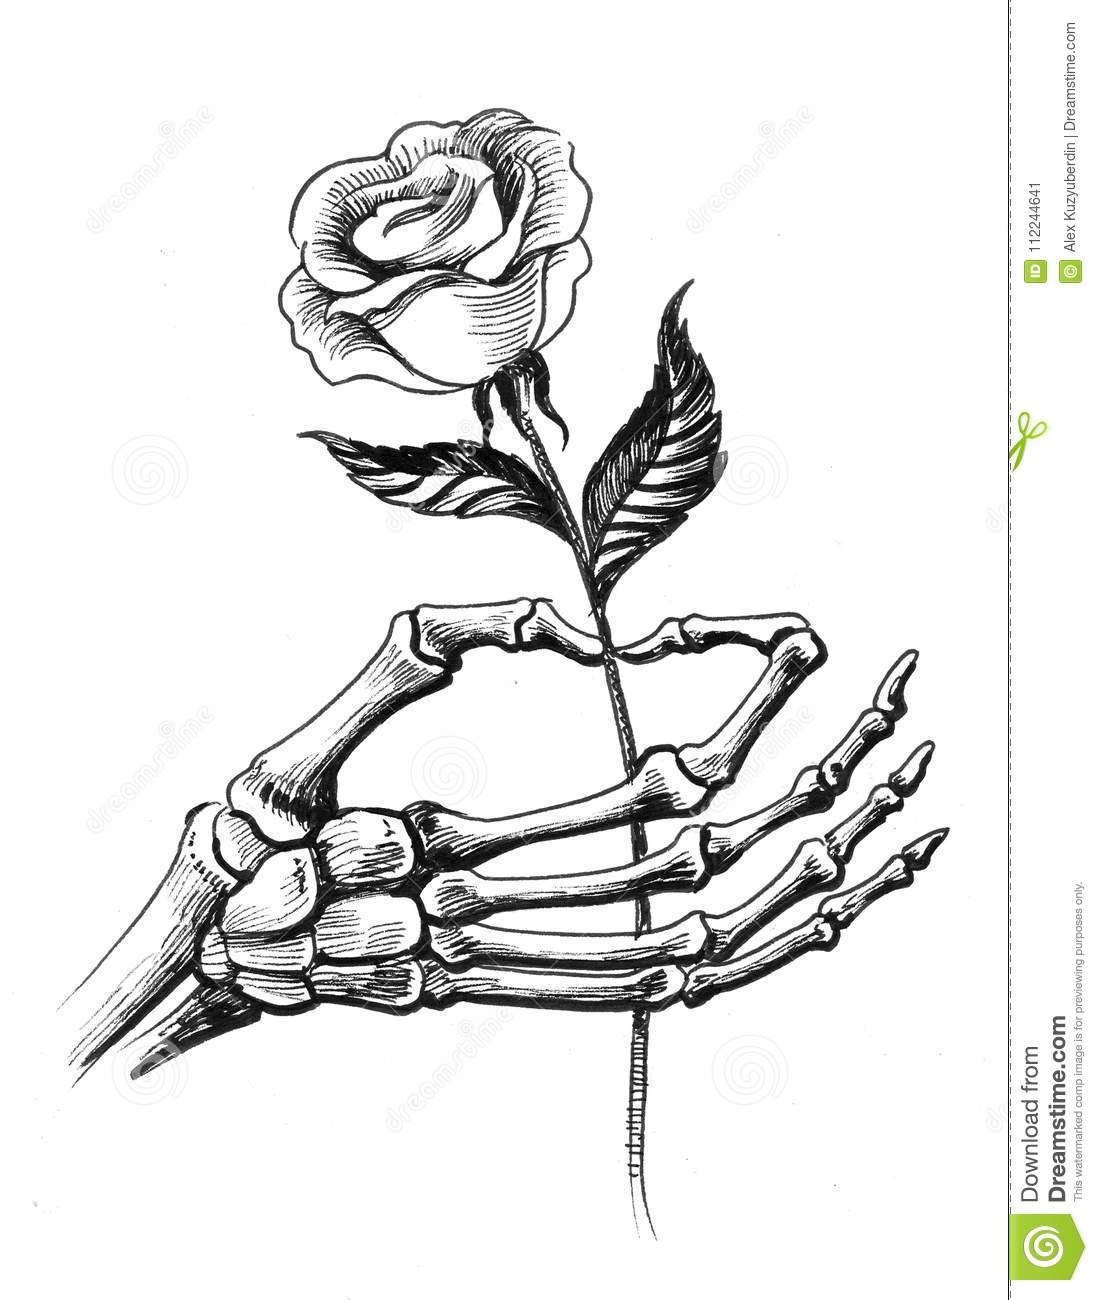 Skeleton hand with a rose stock illustration illustration of ink black and white illustration of a skeleton hand holding a rose flower mightylinksfo